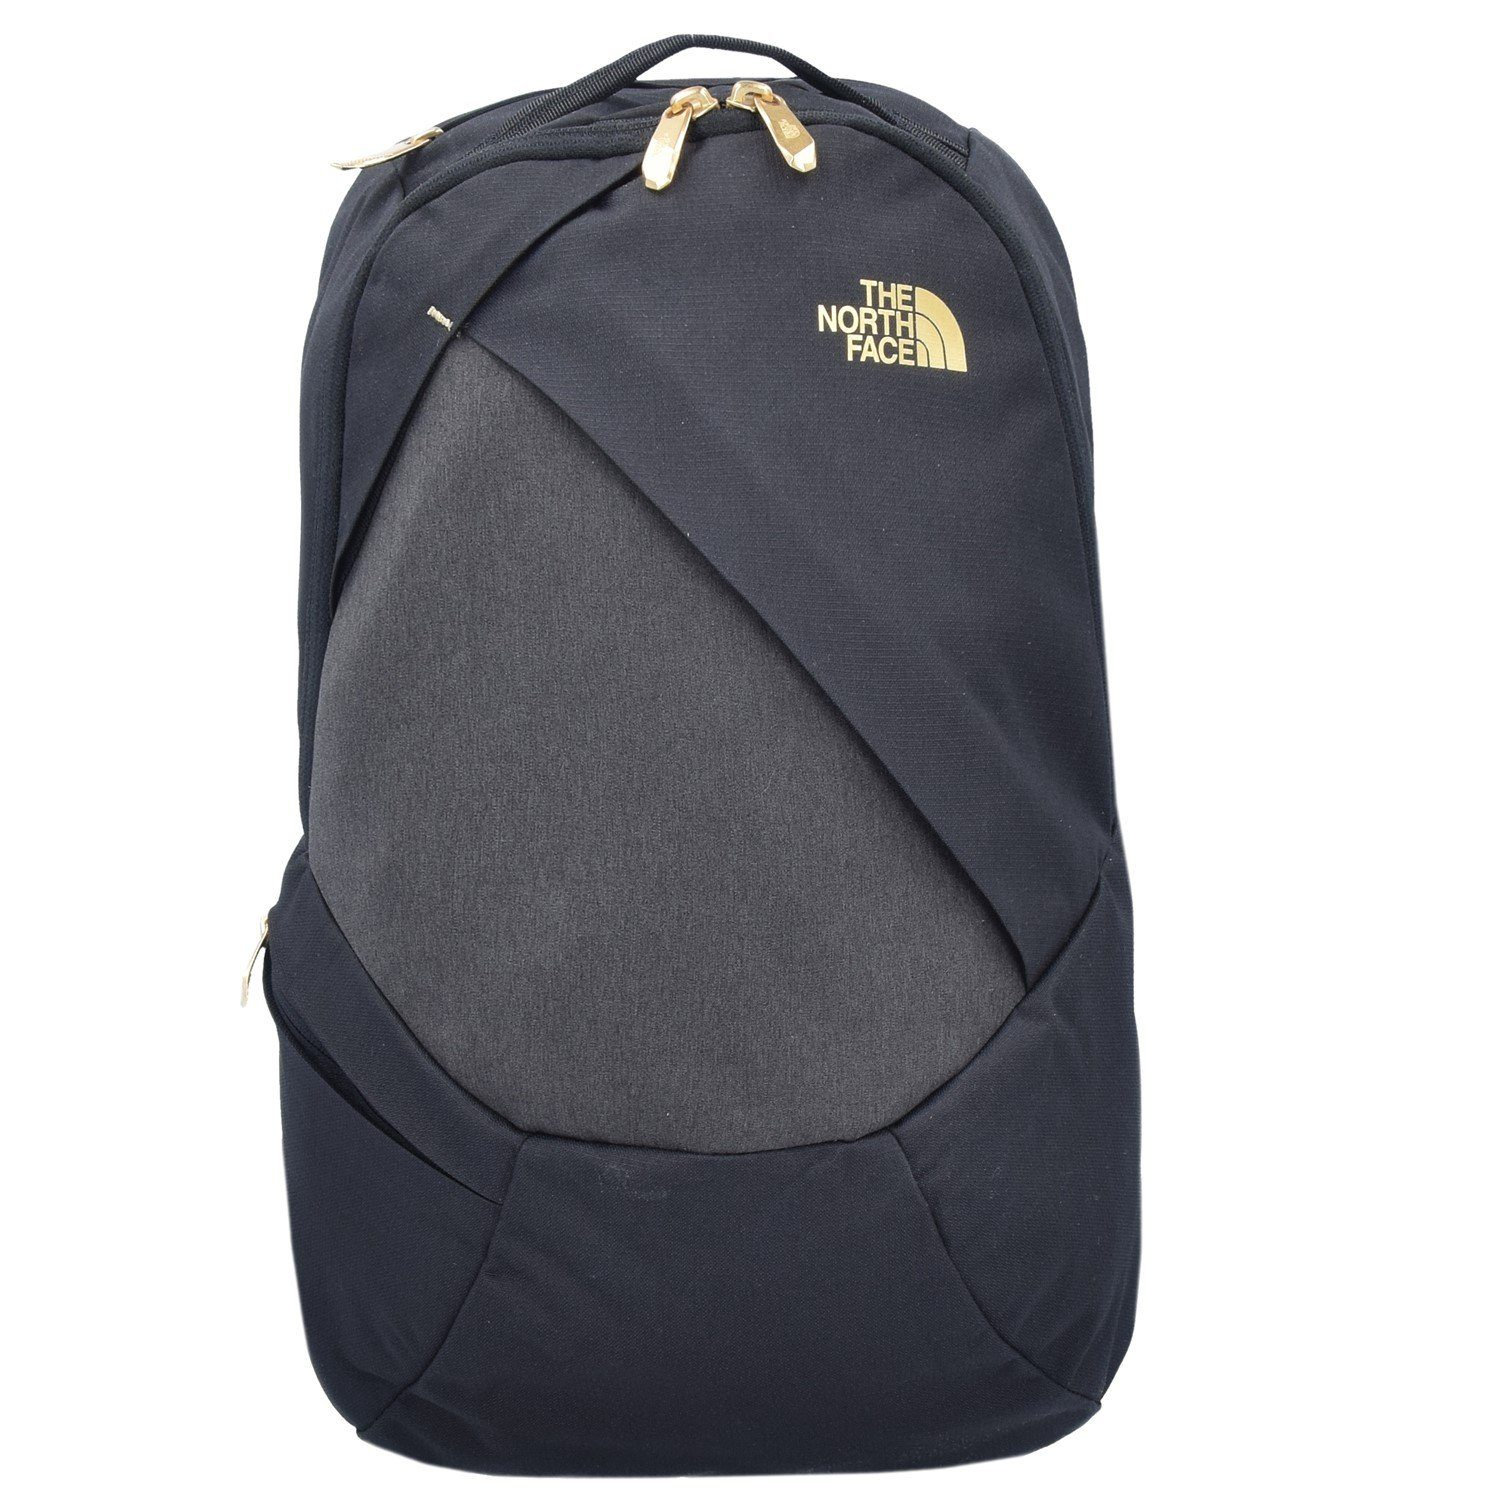 The North Face W Electra Rucksack 41 cm Laptopfach